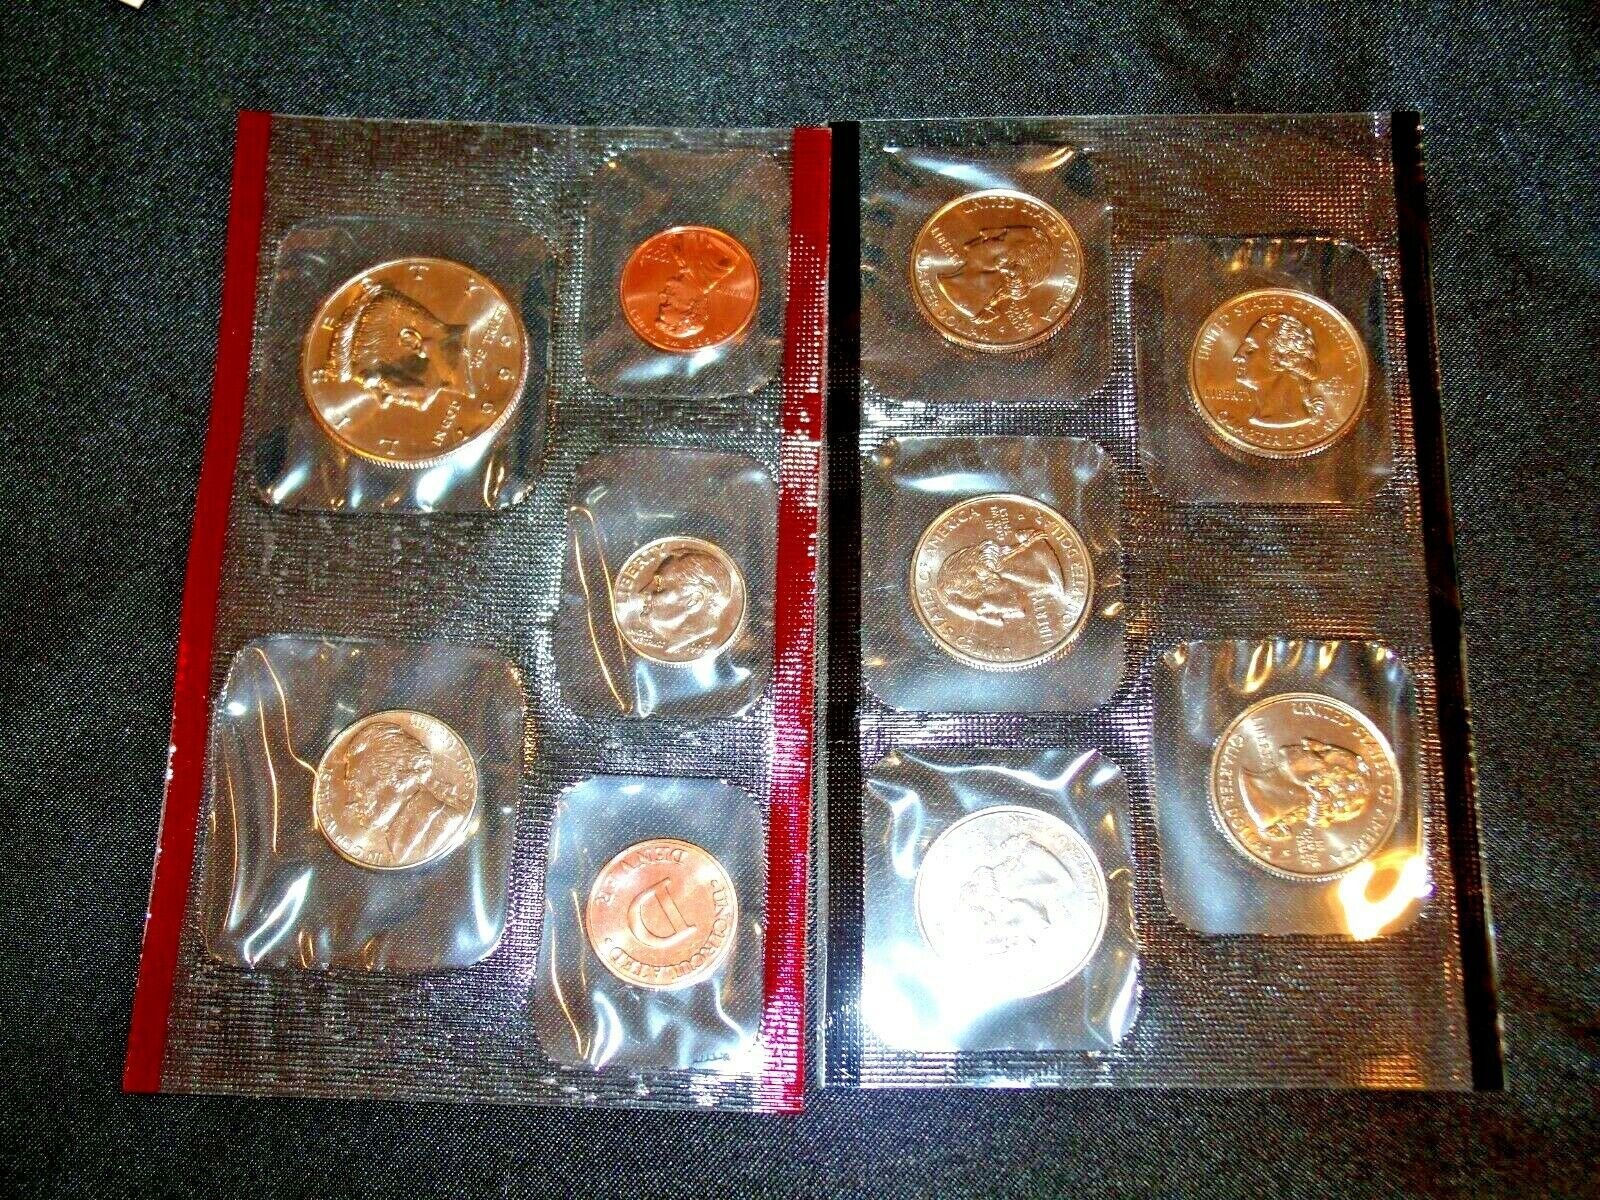 1999 United States Mint Uncirculated Coin Set  AA19-CNP6004